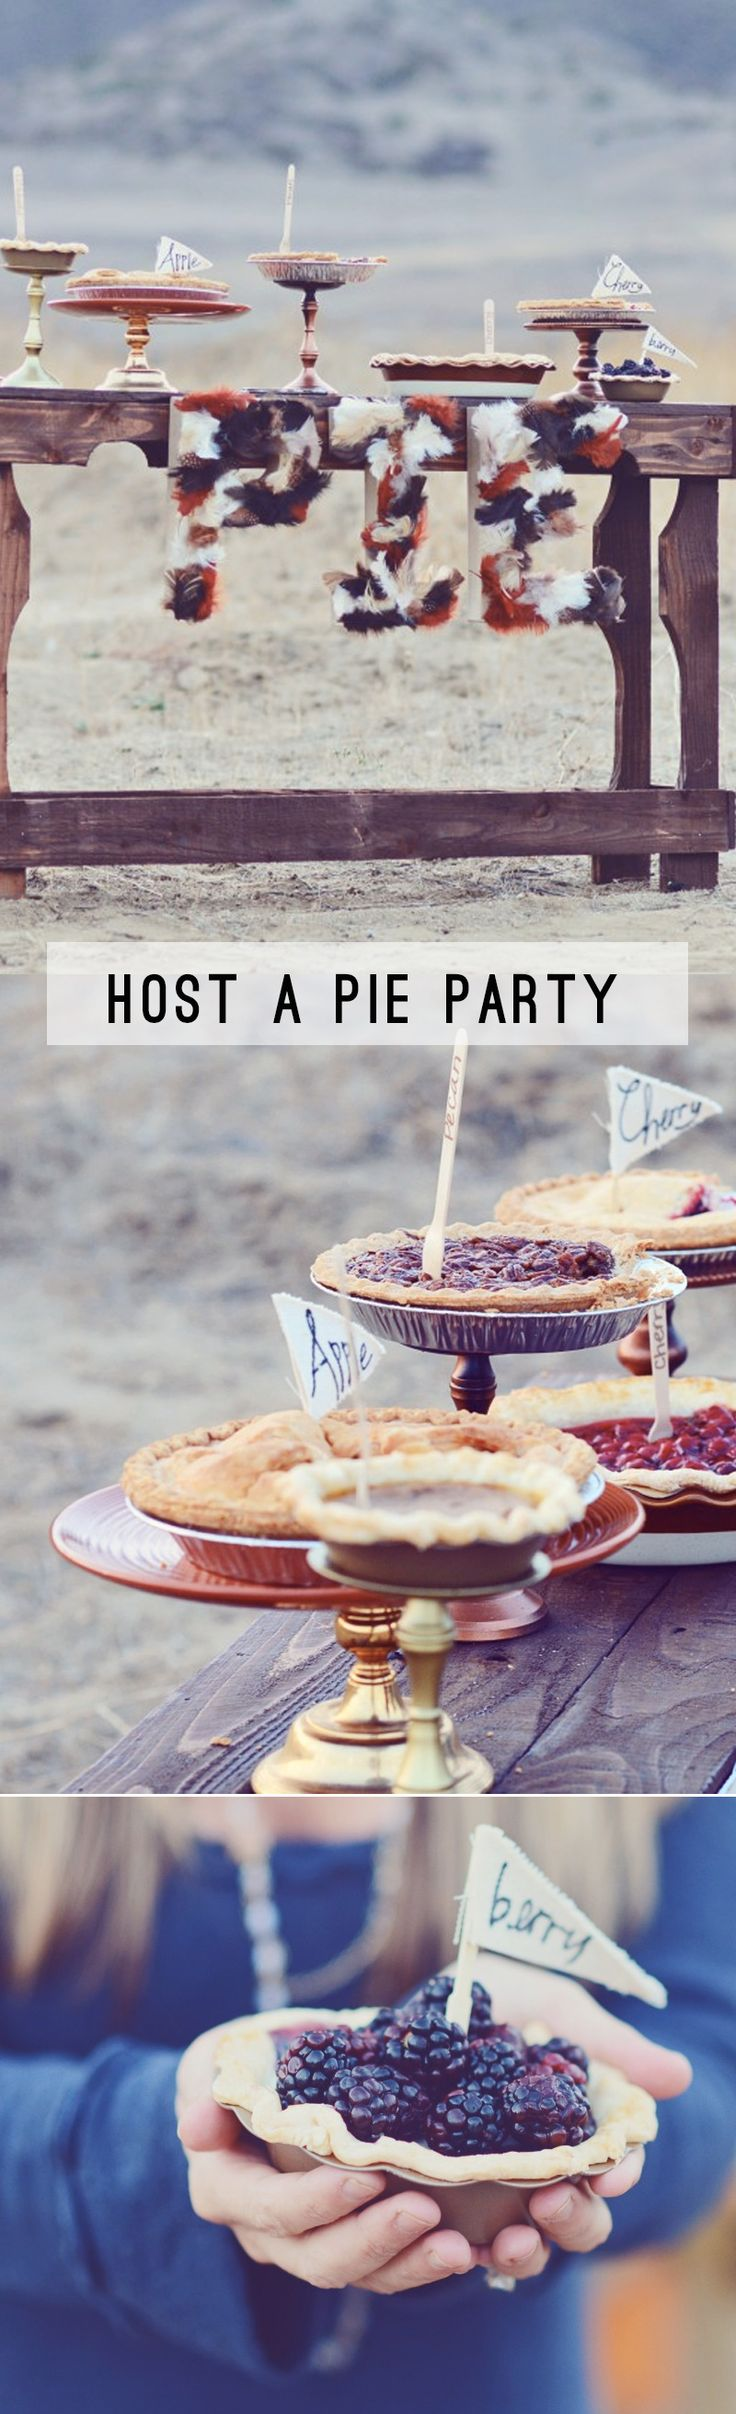 Host a Pie Party